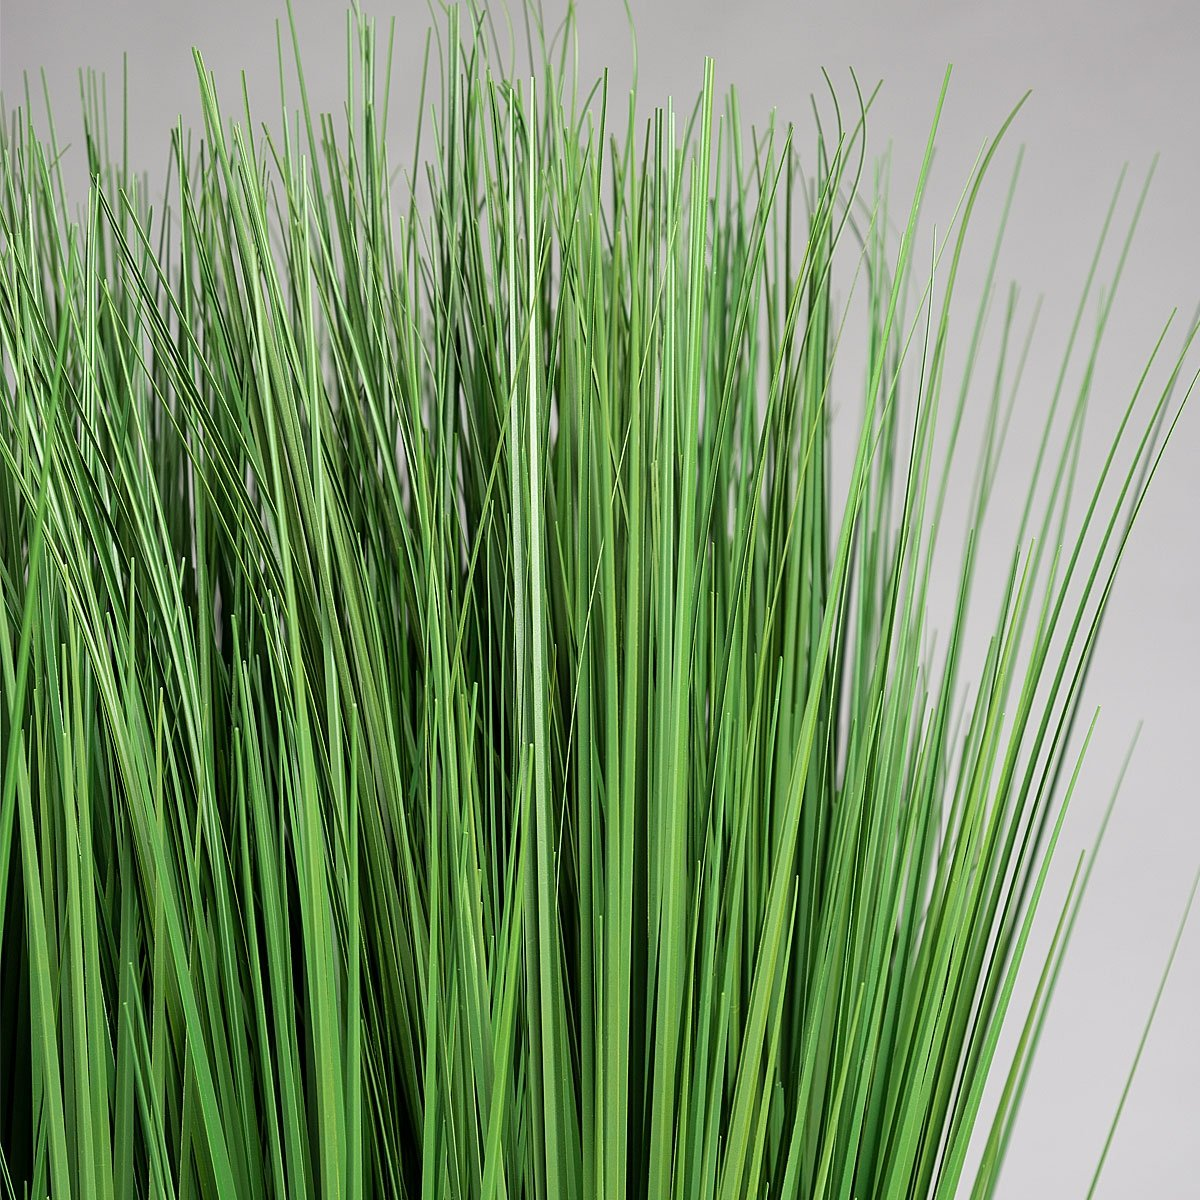 Grass: Outdoor in Urbano Rectangle, LG